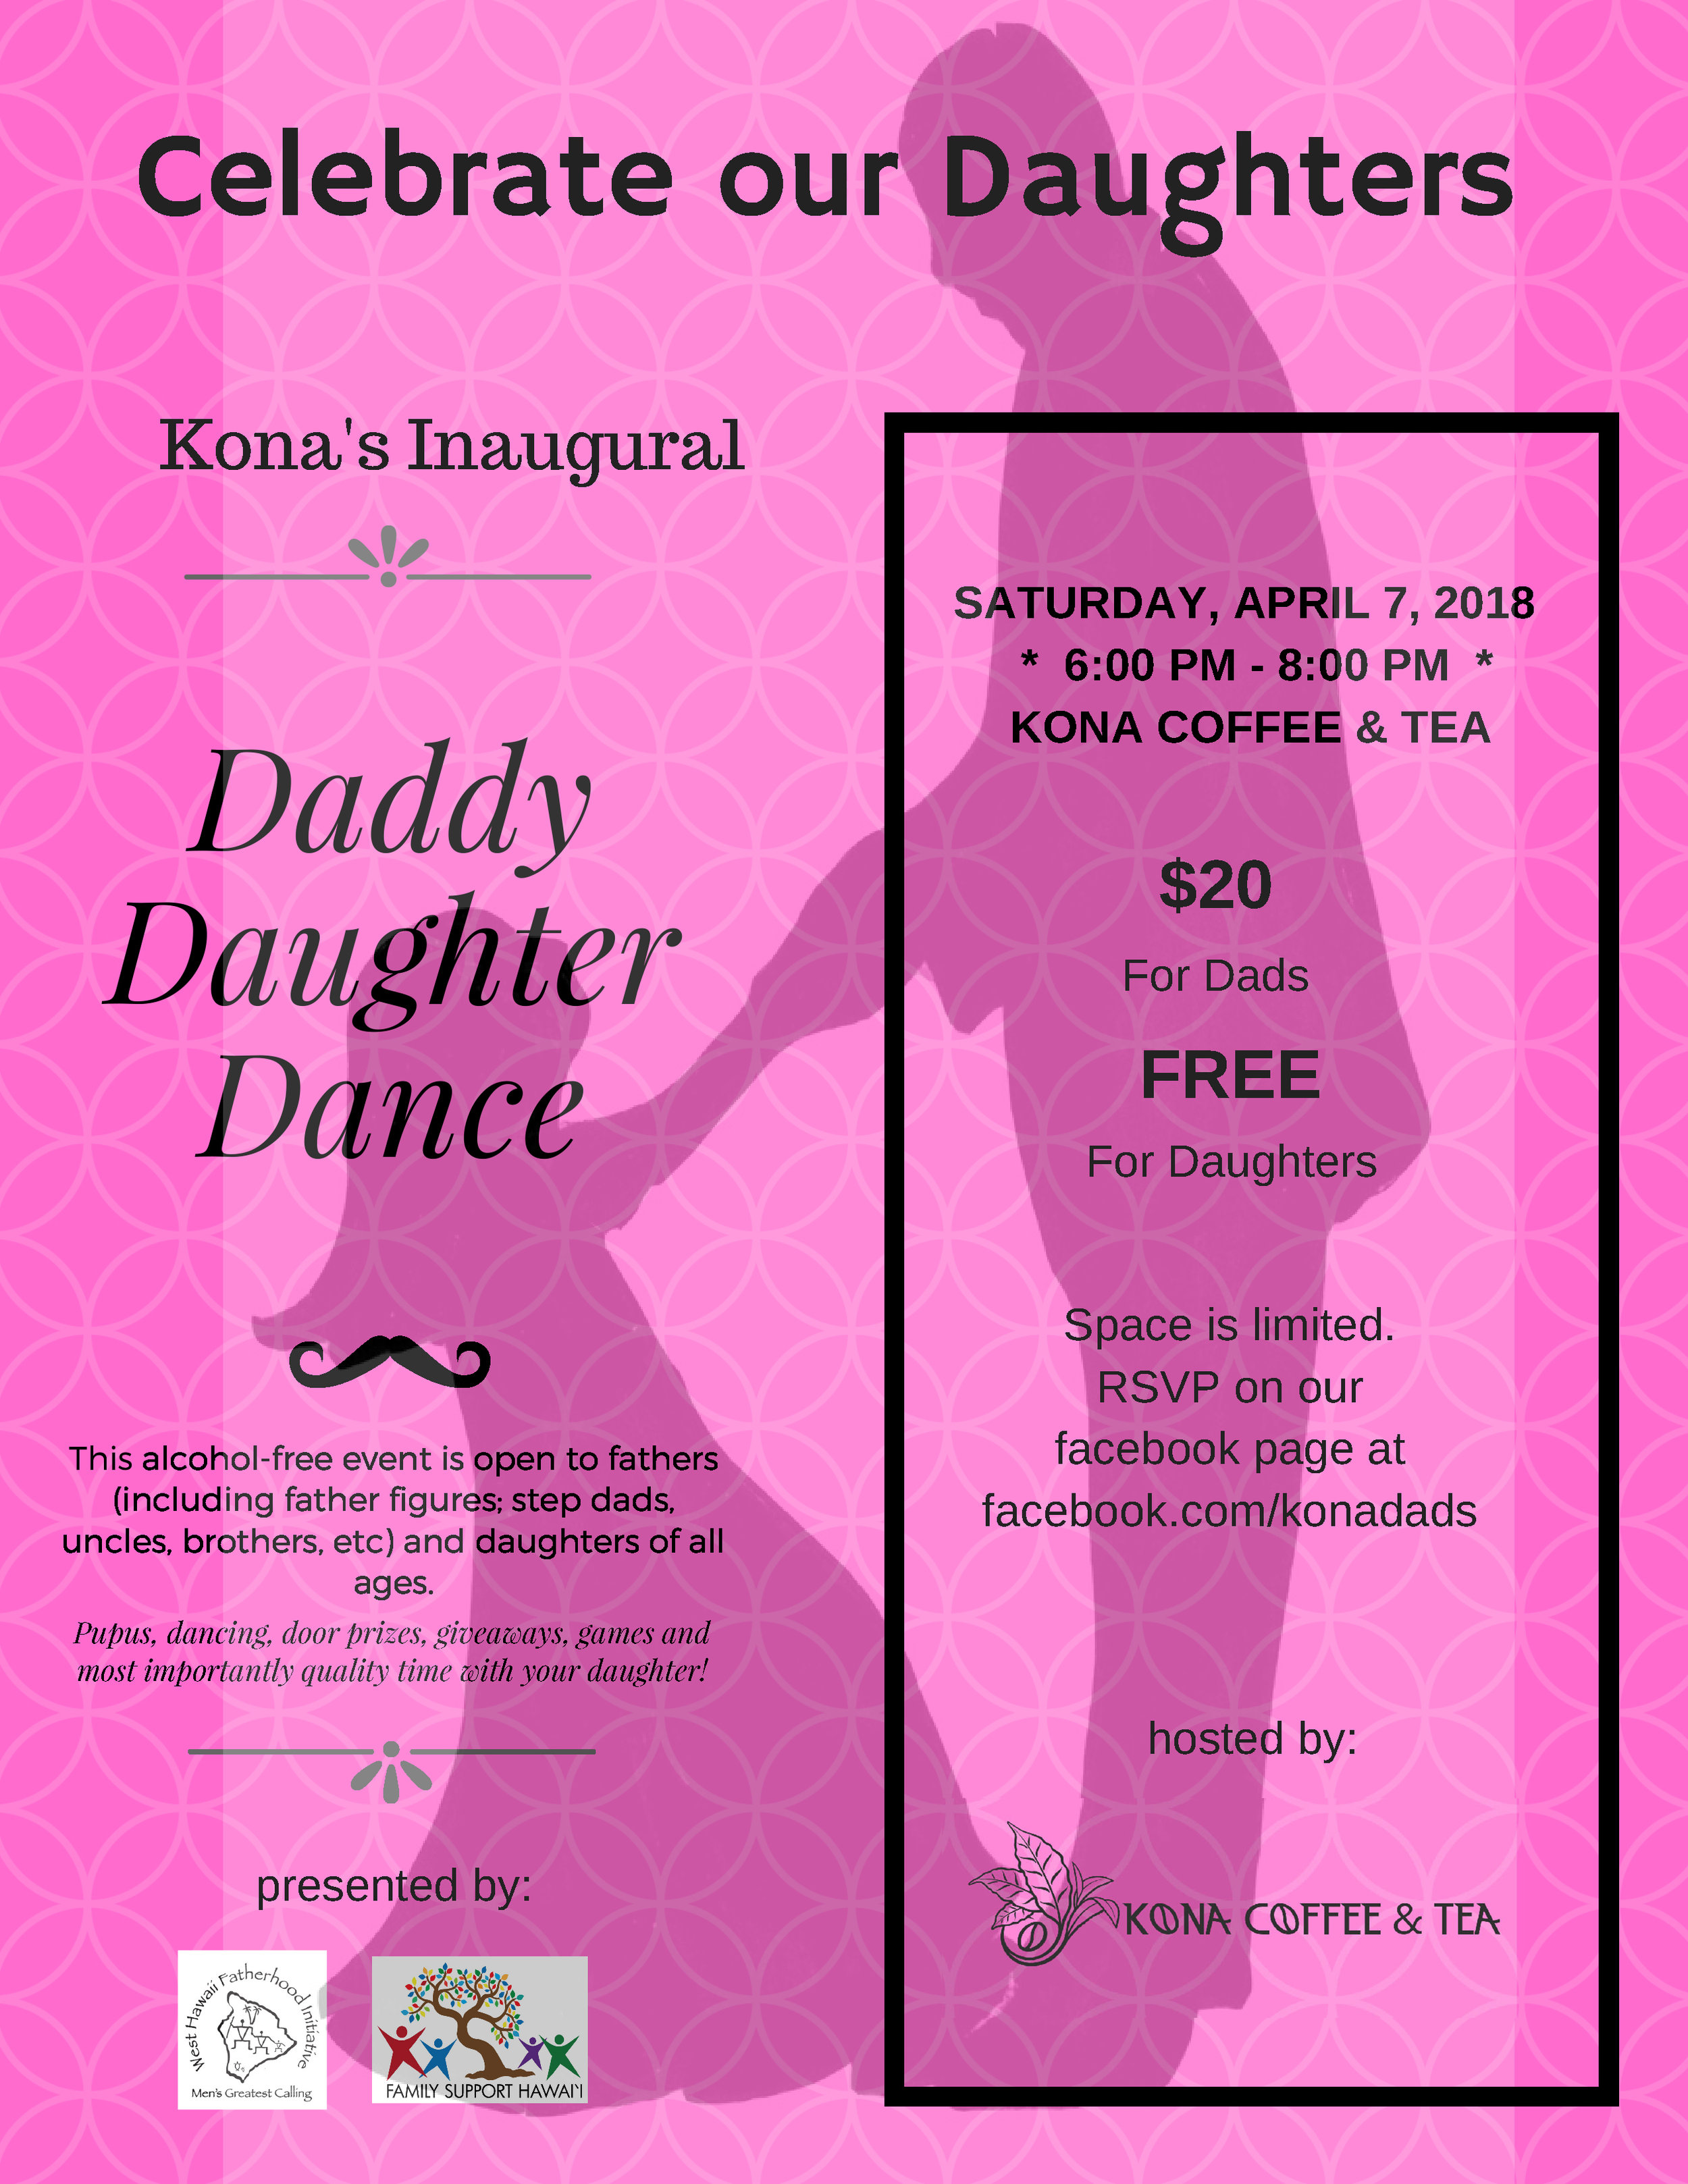 Daddy-daughter dance_updated KCTC logo.jpg